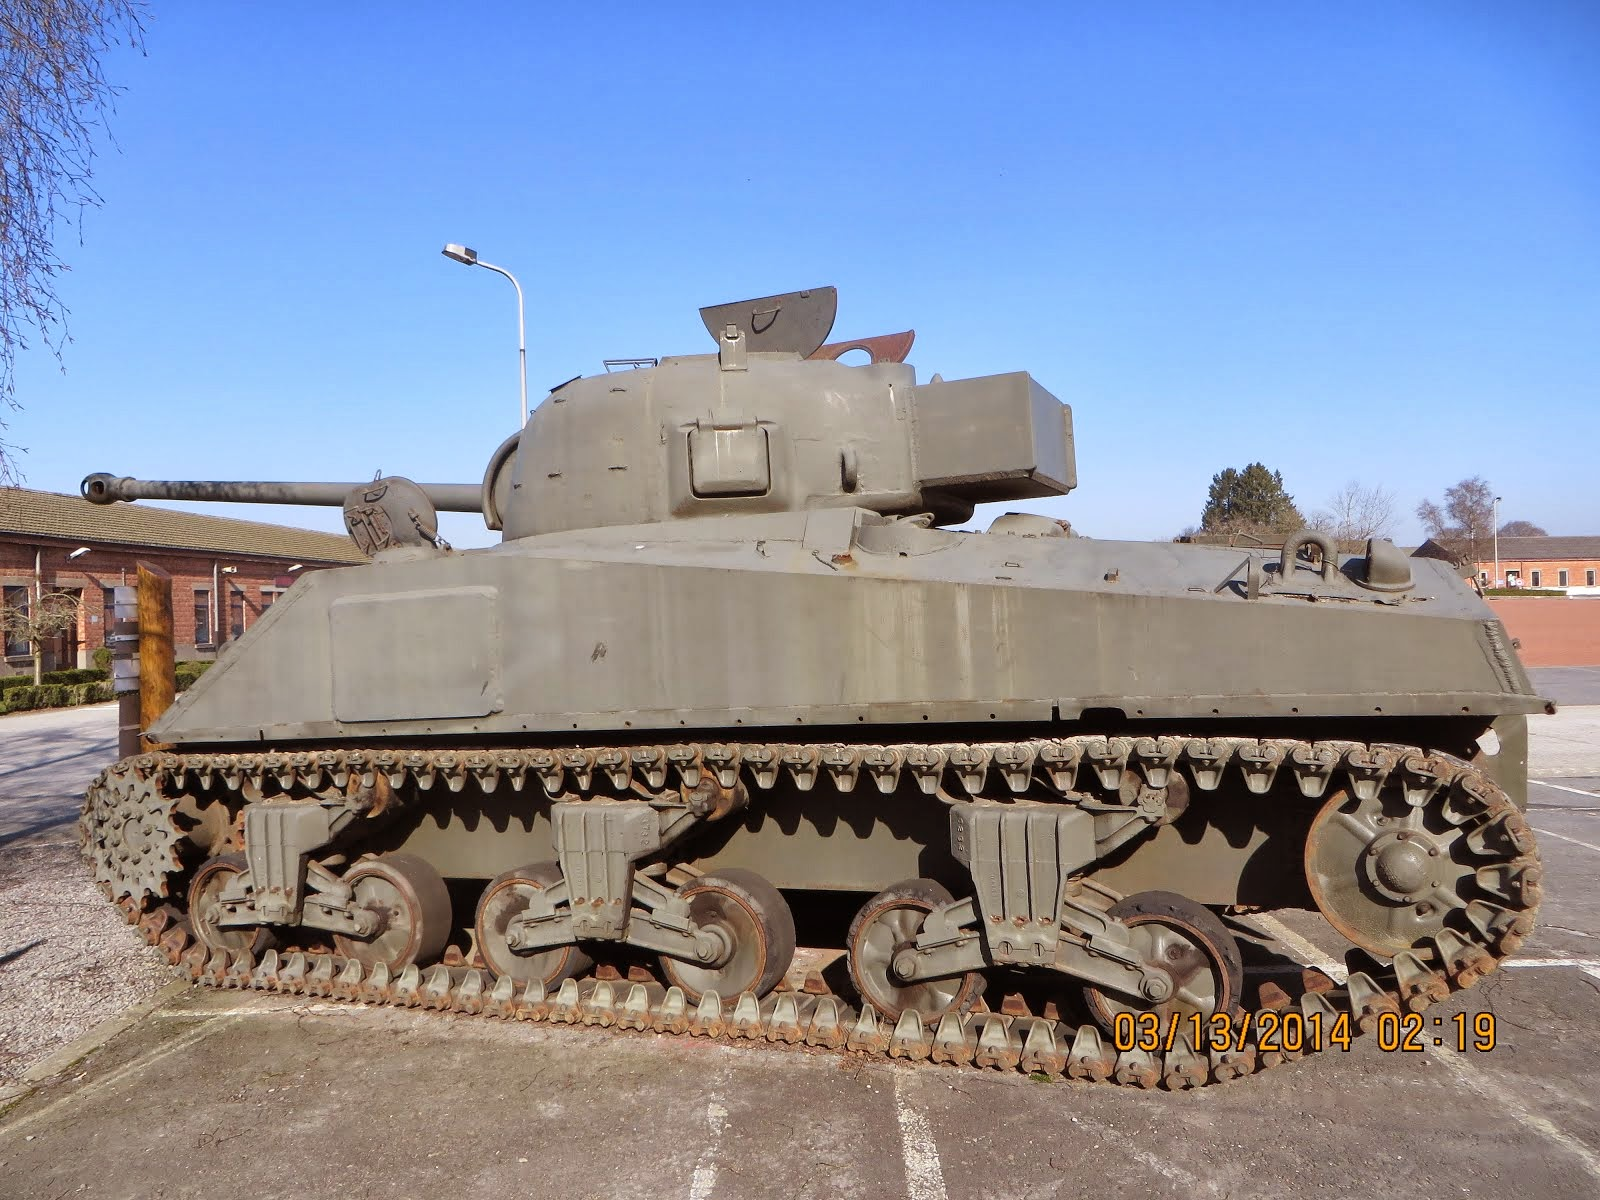 Sherman Tank, Battle of the Bulge, Bastogne Barracks, Belgium